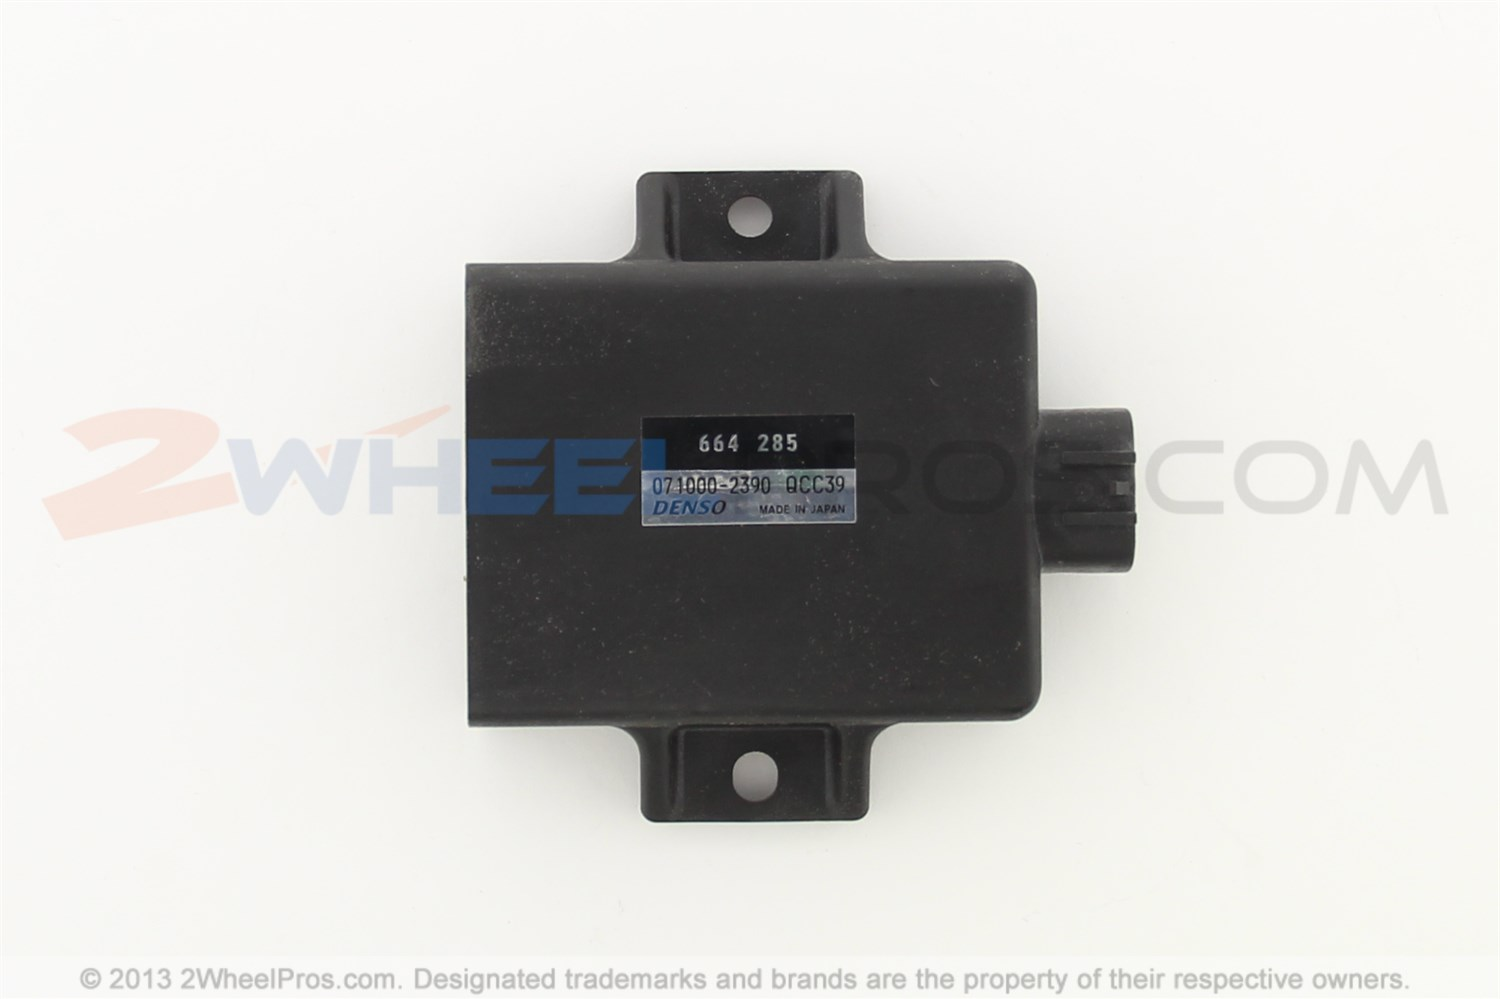 hight resolution of can am 420664285 amplifier box cdi